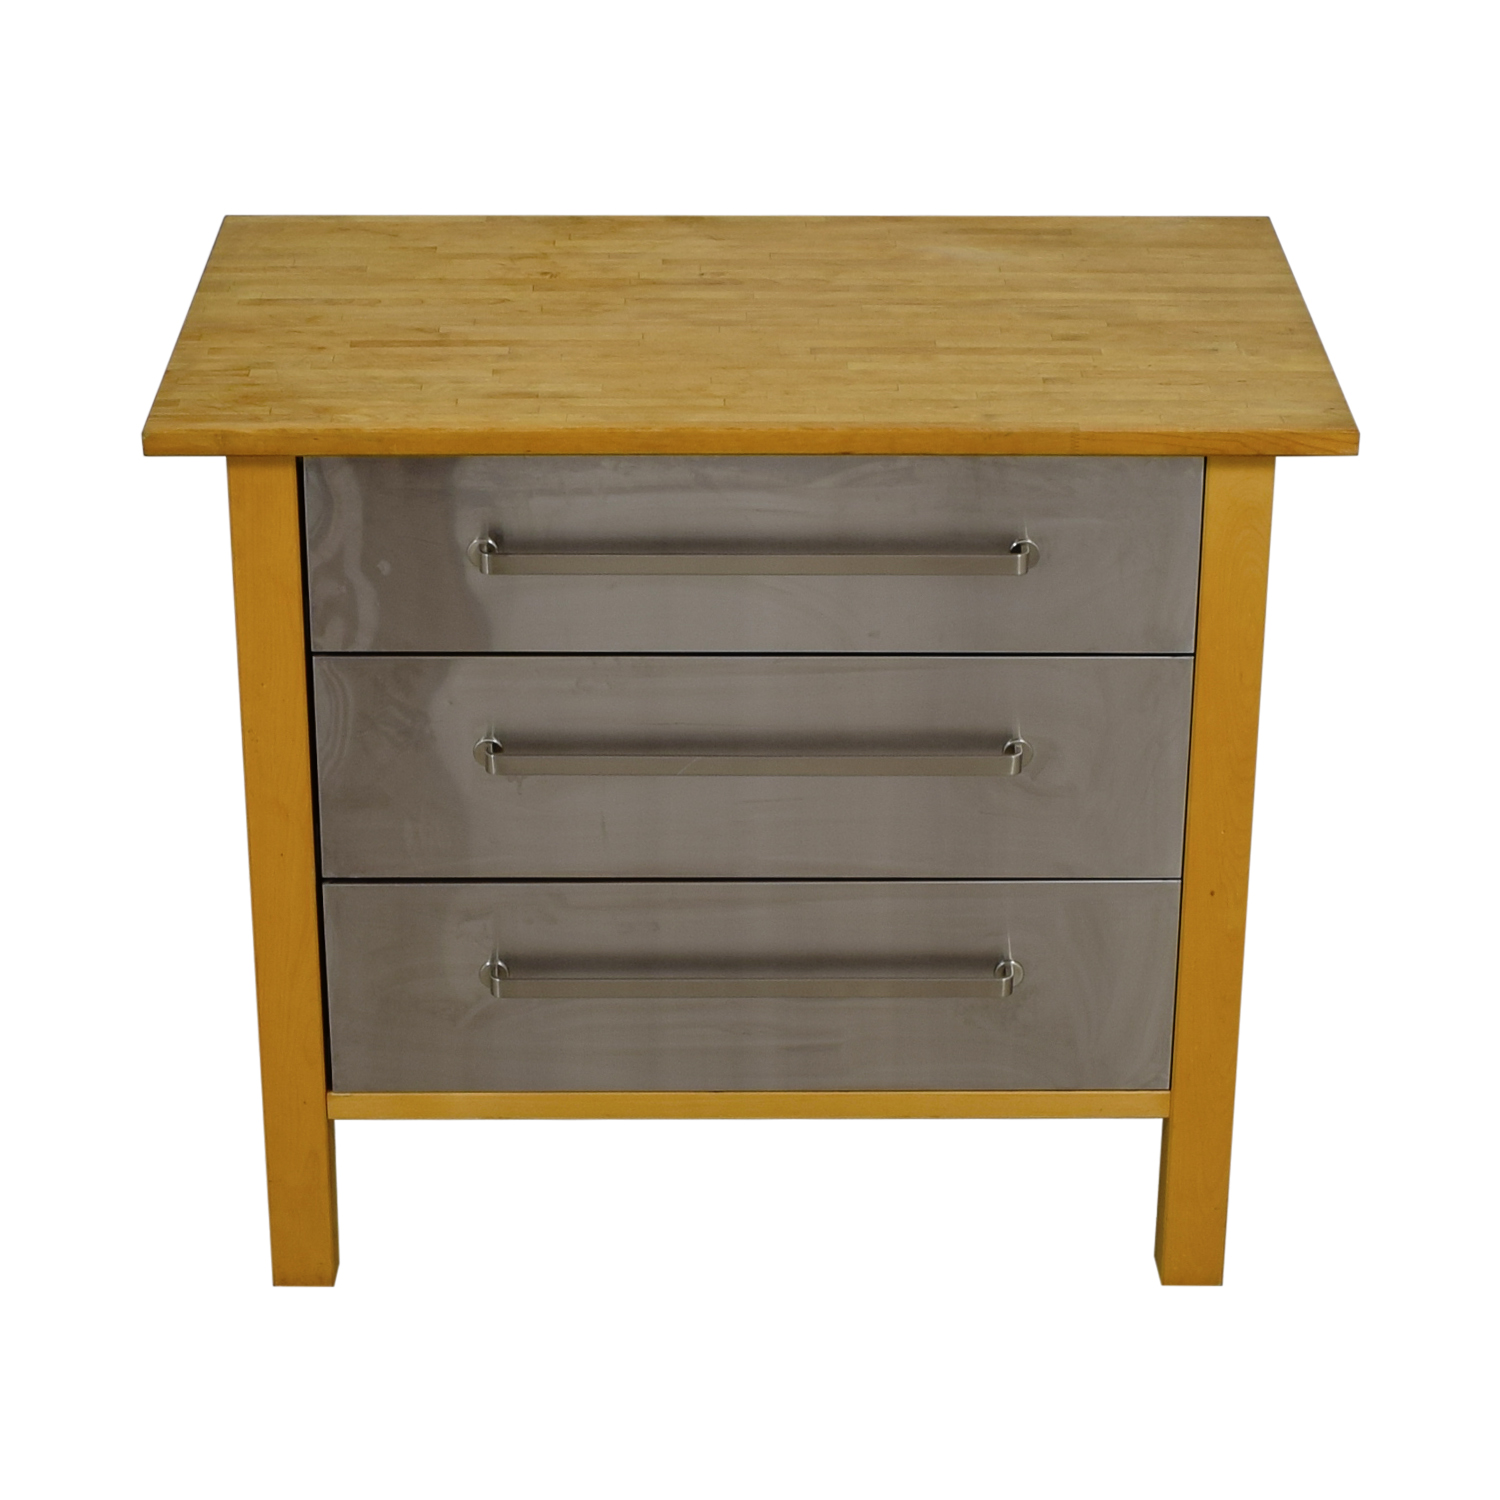 IKEA IKEA Varde Kitchen Butcher Block Island with Metal Drawers for sale